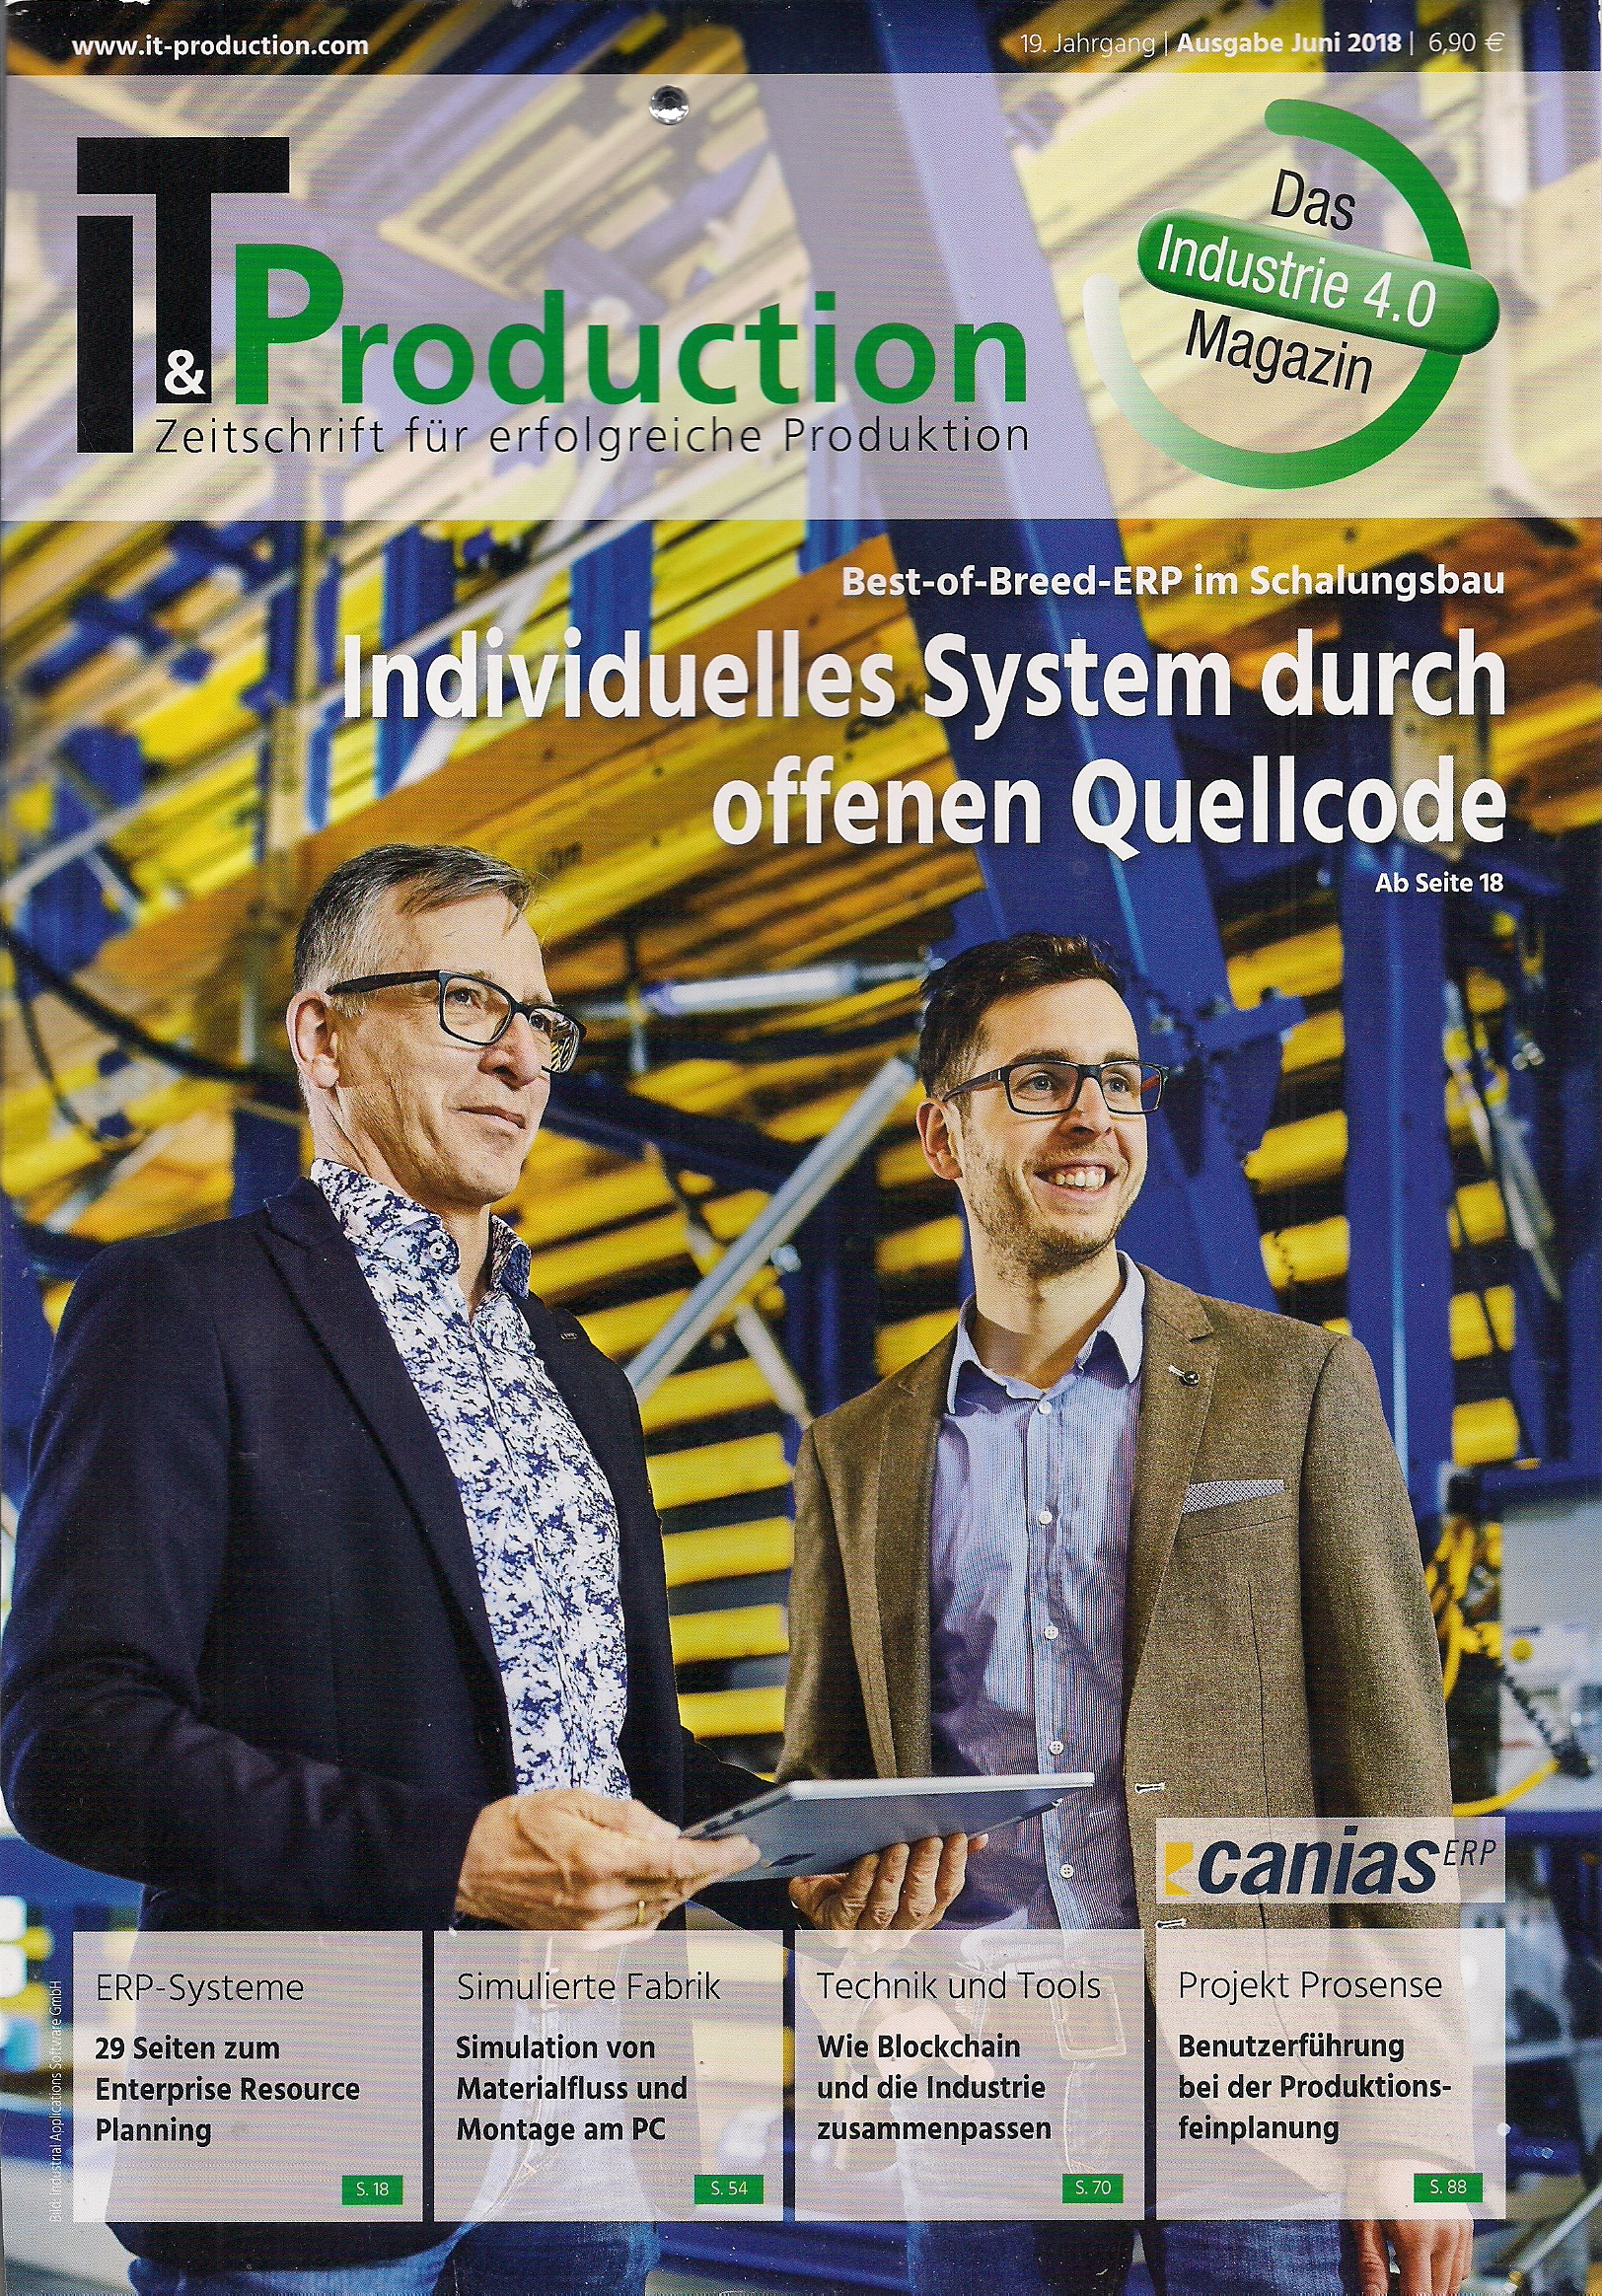 IT&Production_IQSoftware_Schwevers&Raab_6_2018